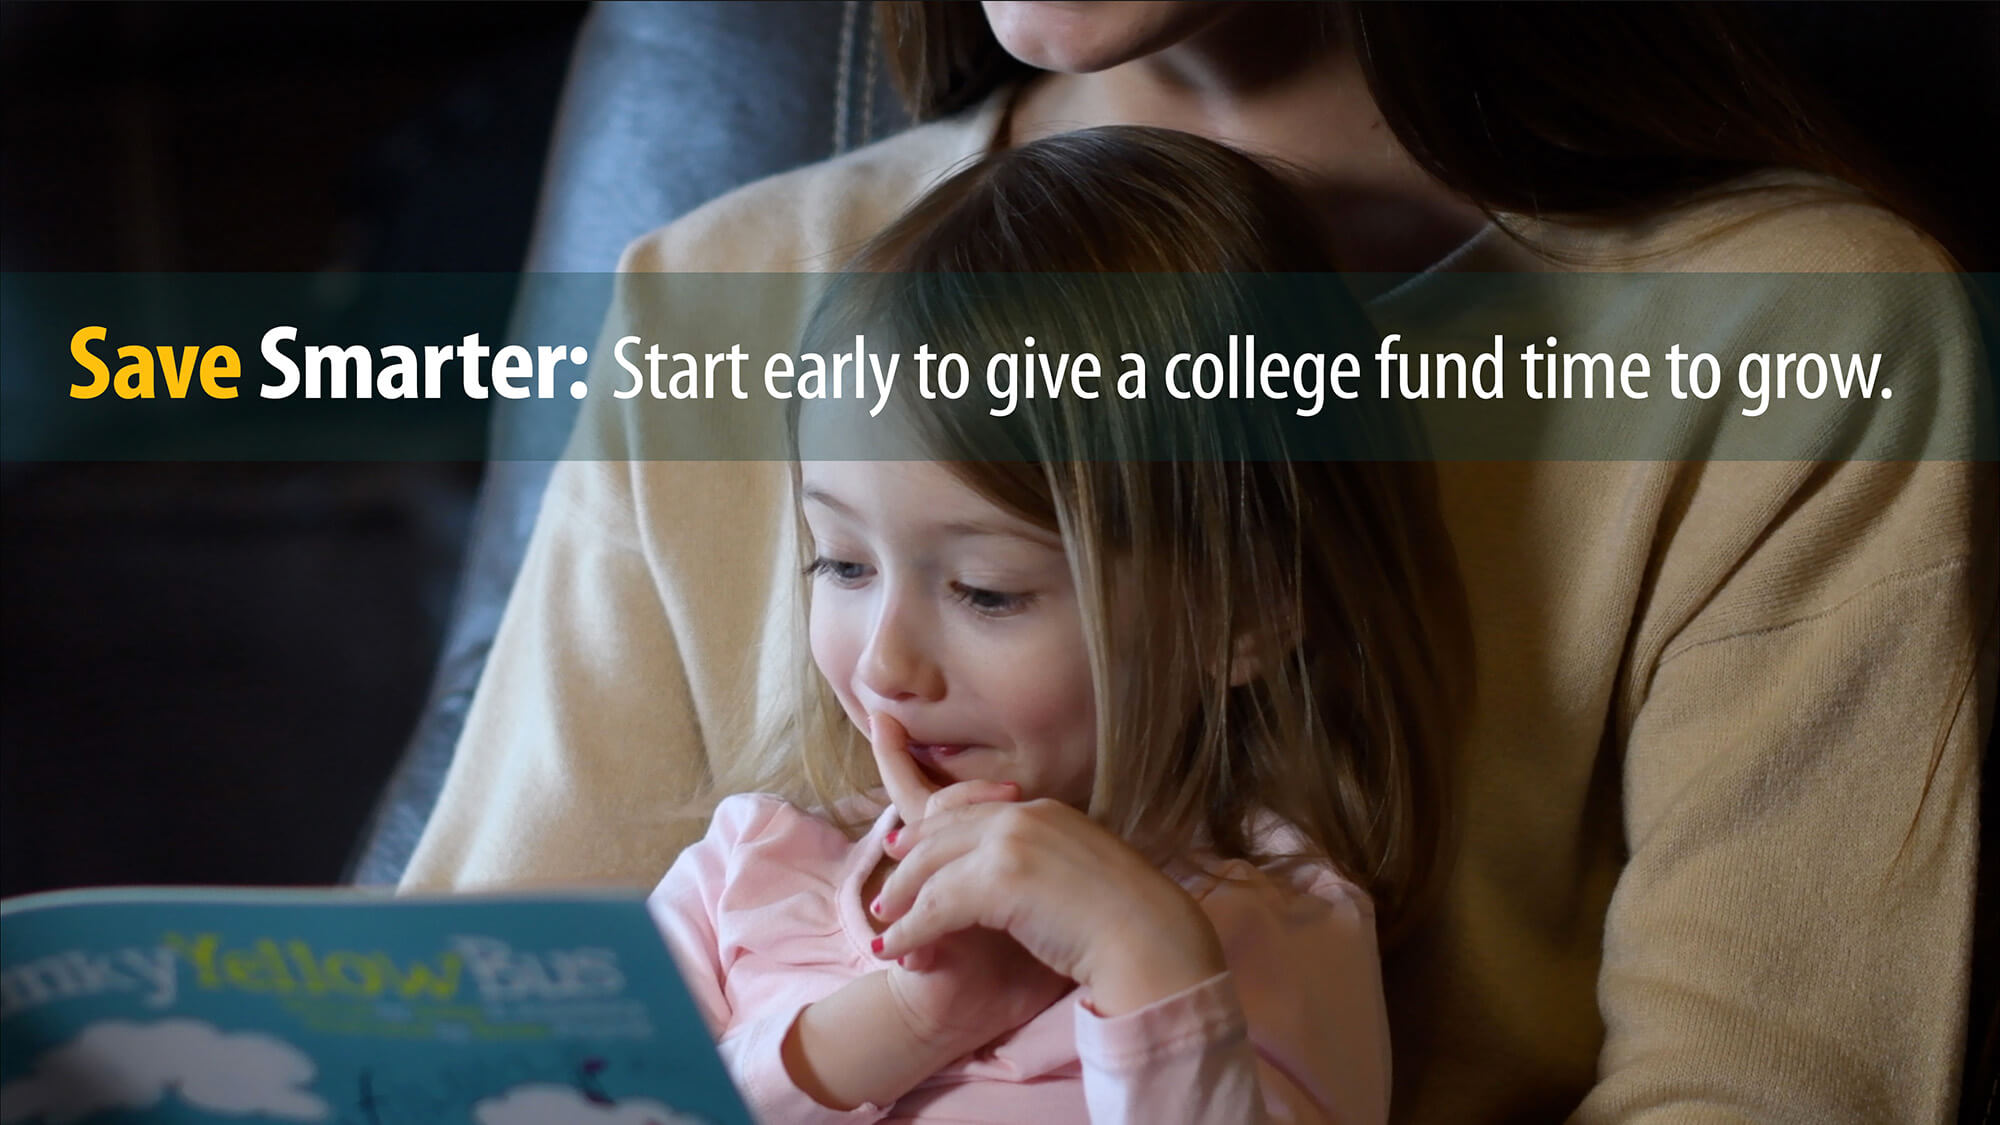 Mom reads book to young girl. Like her financial savings, she is planning ahead for college.